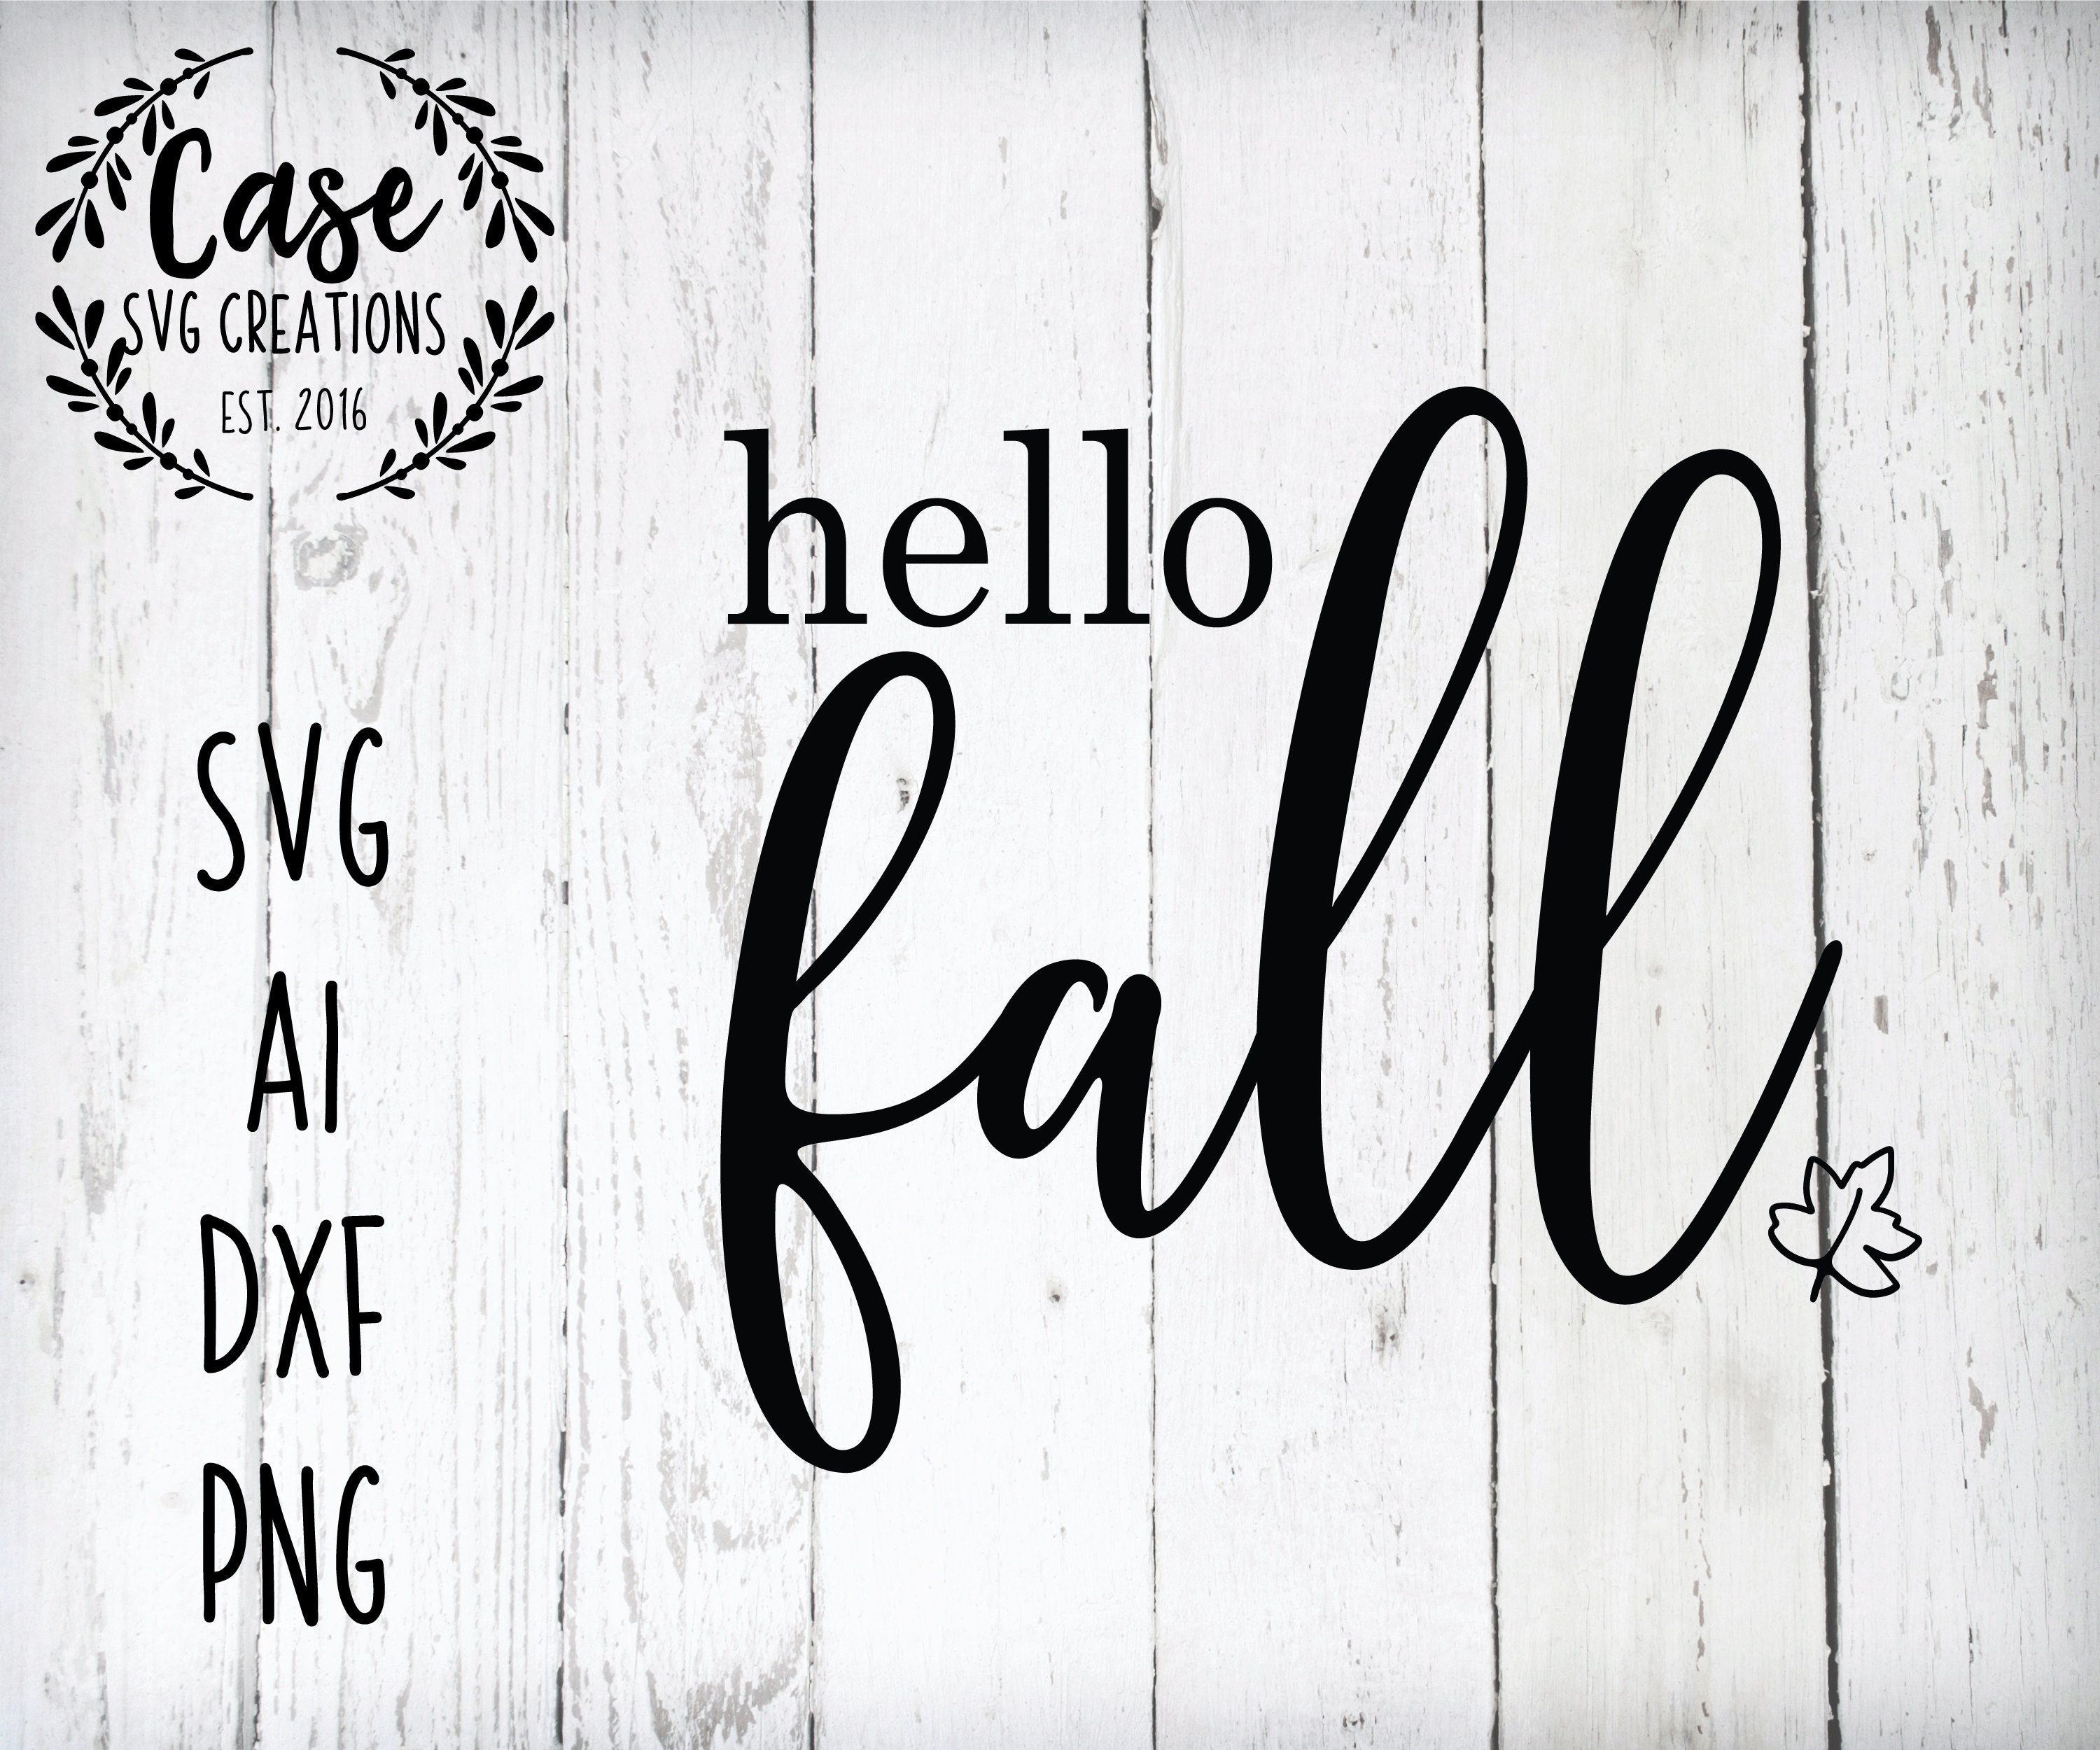 Hello Fall Svg Cutting File Ai Dxf And Printable Png Files Cricut Cameo Silhouette Crunchy Leaves Leaf Autumn Farmhouse Rustic